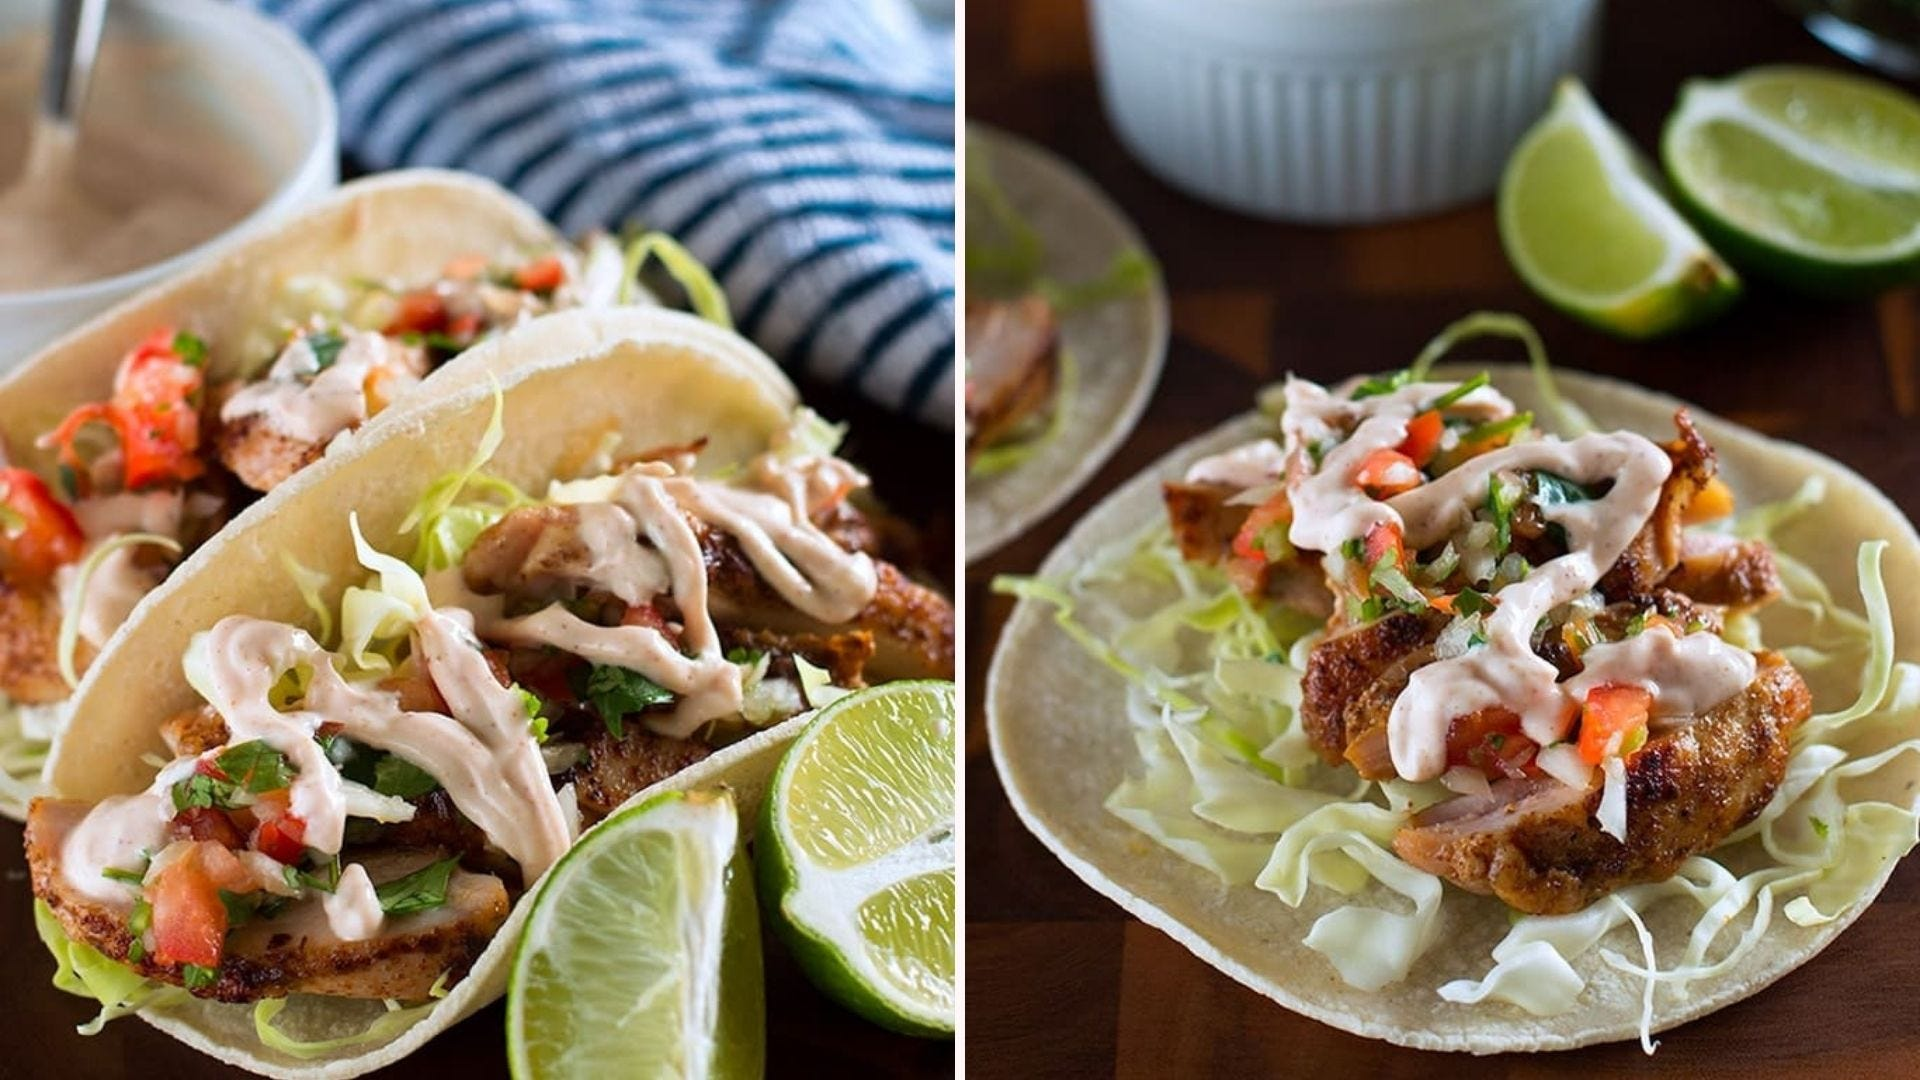 Two side by side images of chicken tacos topped with pico de gallo, lettuce and chipotle crema sauce made with Greek yogurt.